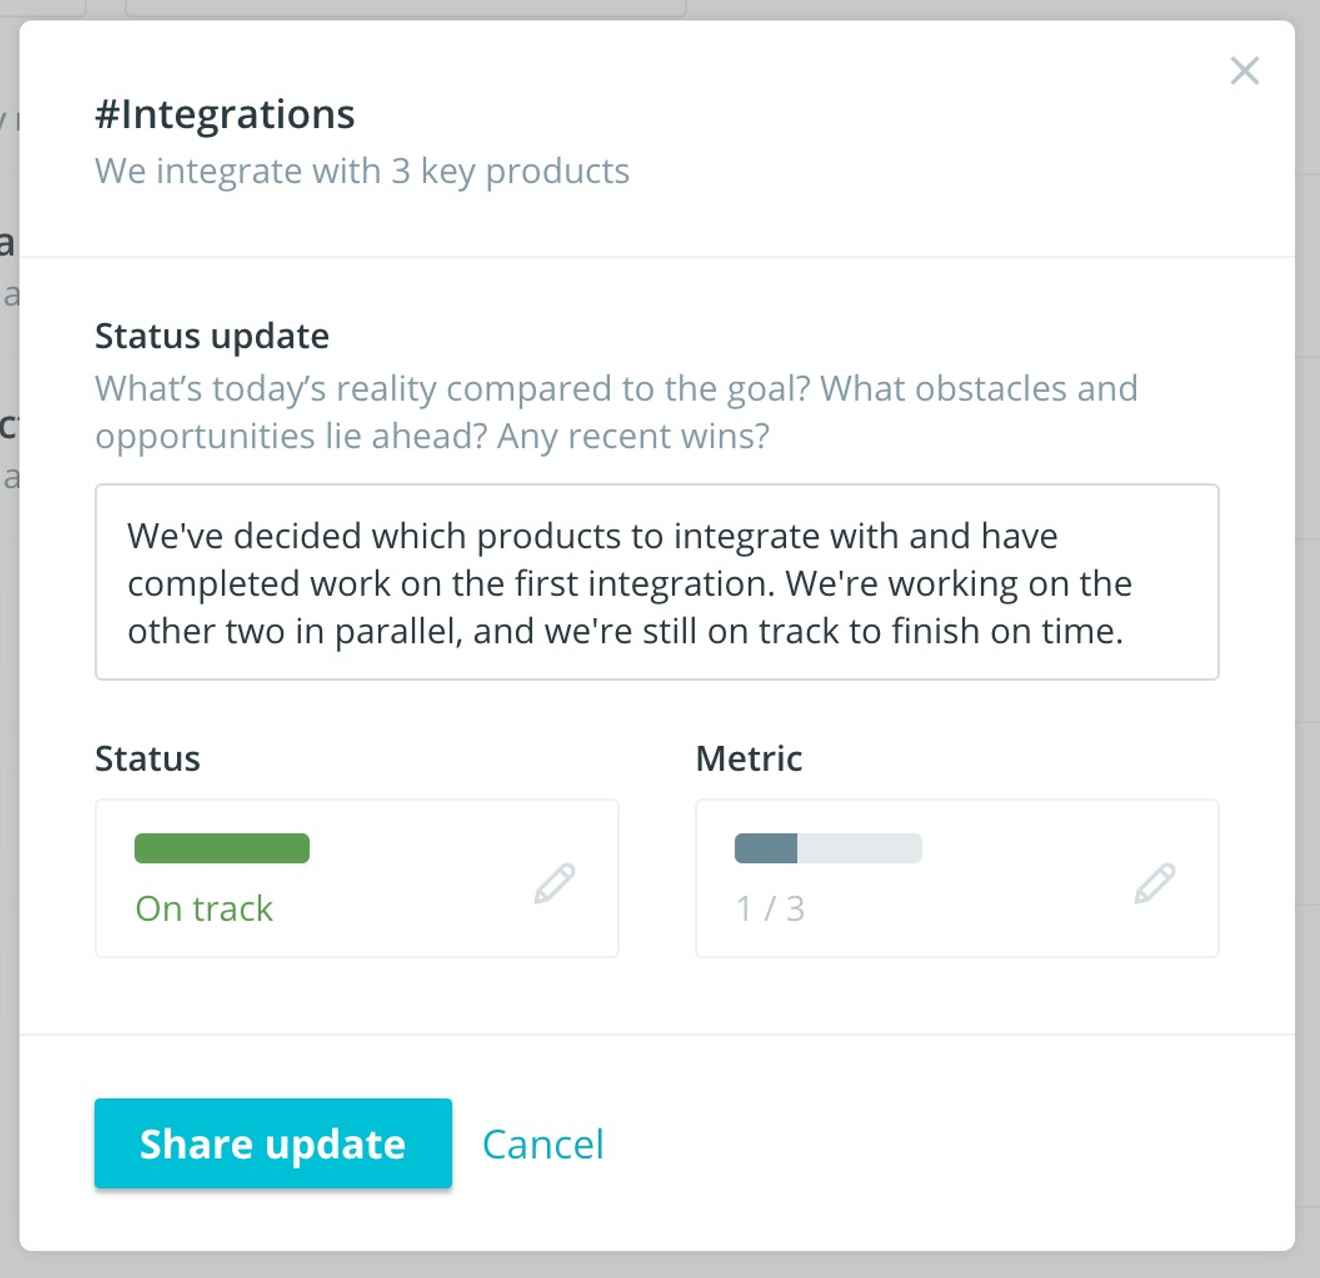 Keep everyone in the loop on progress by updating the status of your objectives